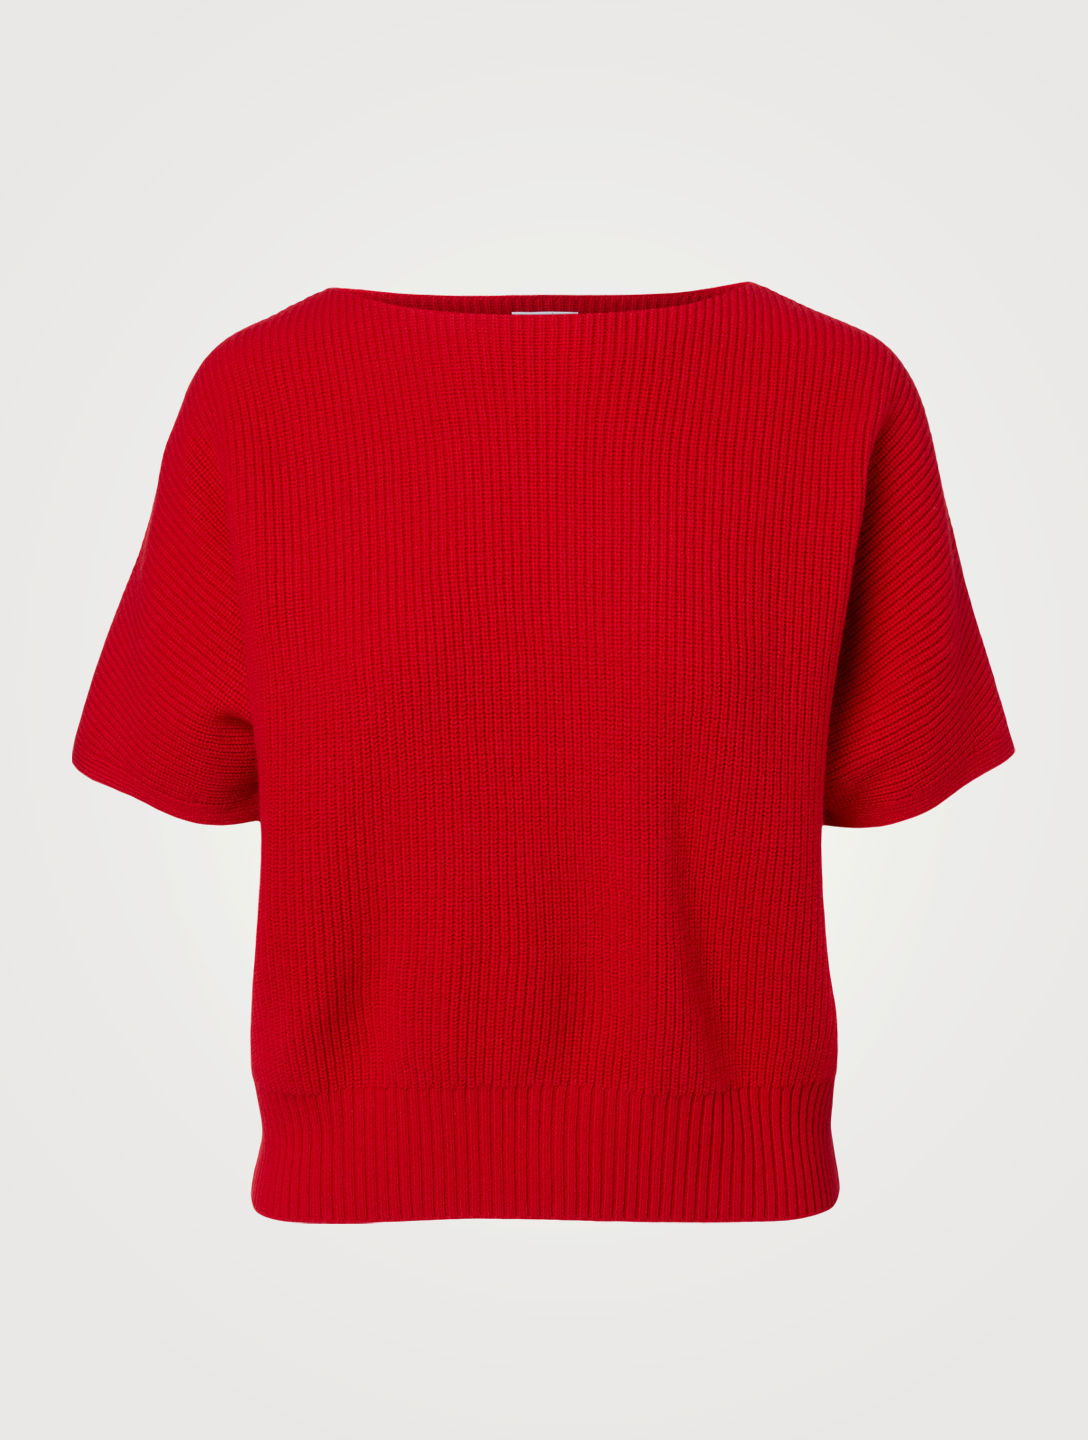 AKRIS PUNTO Wool And Cashmere Cropped Sweater Women's Red